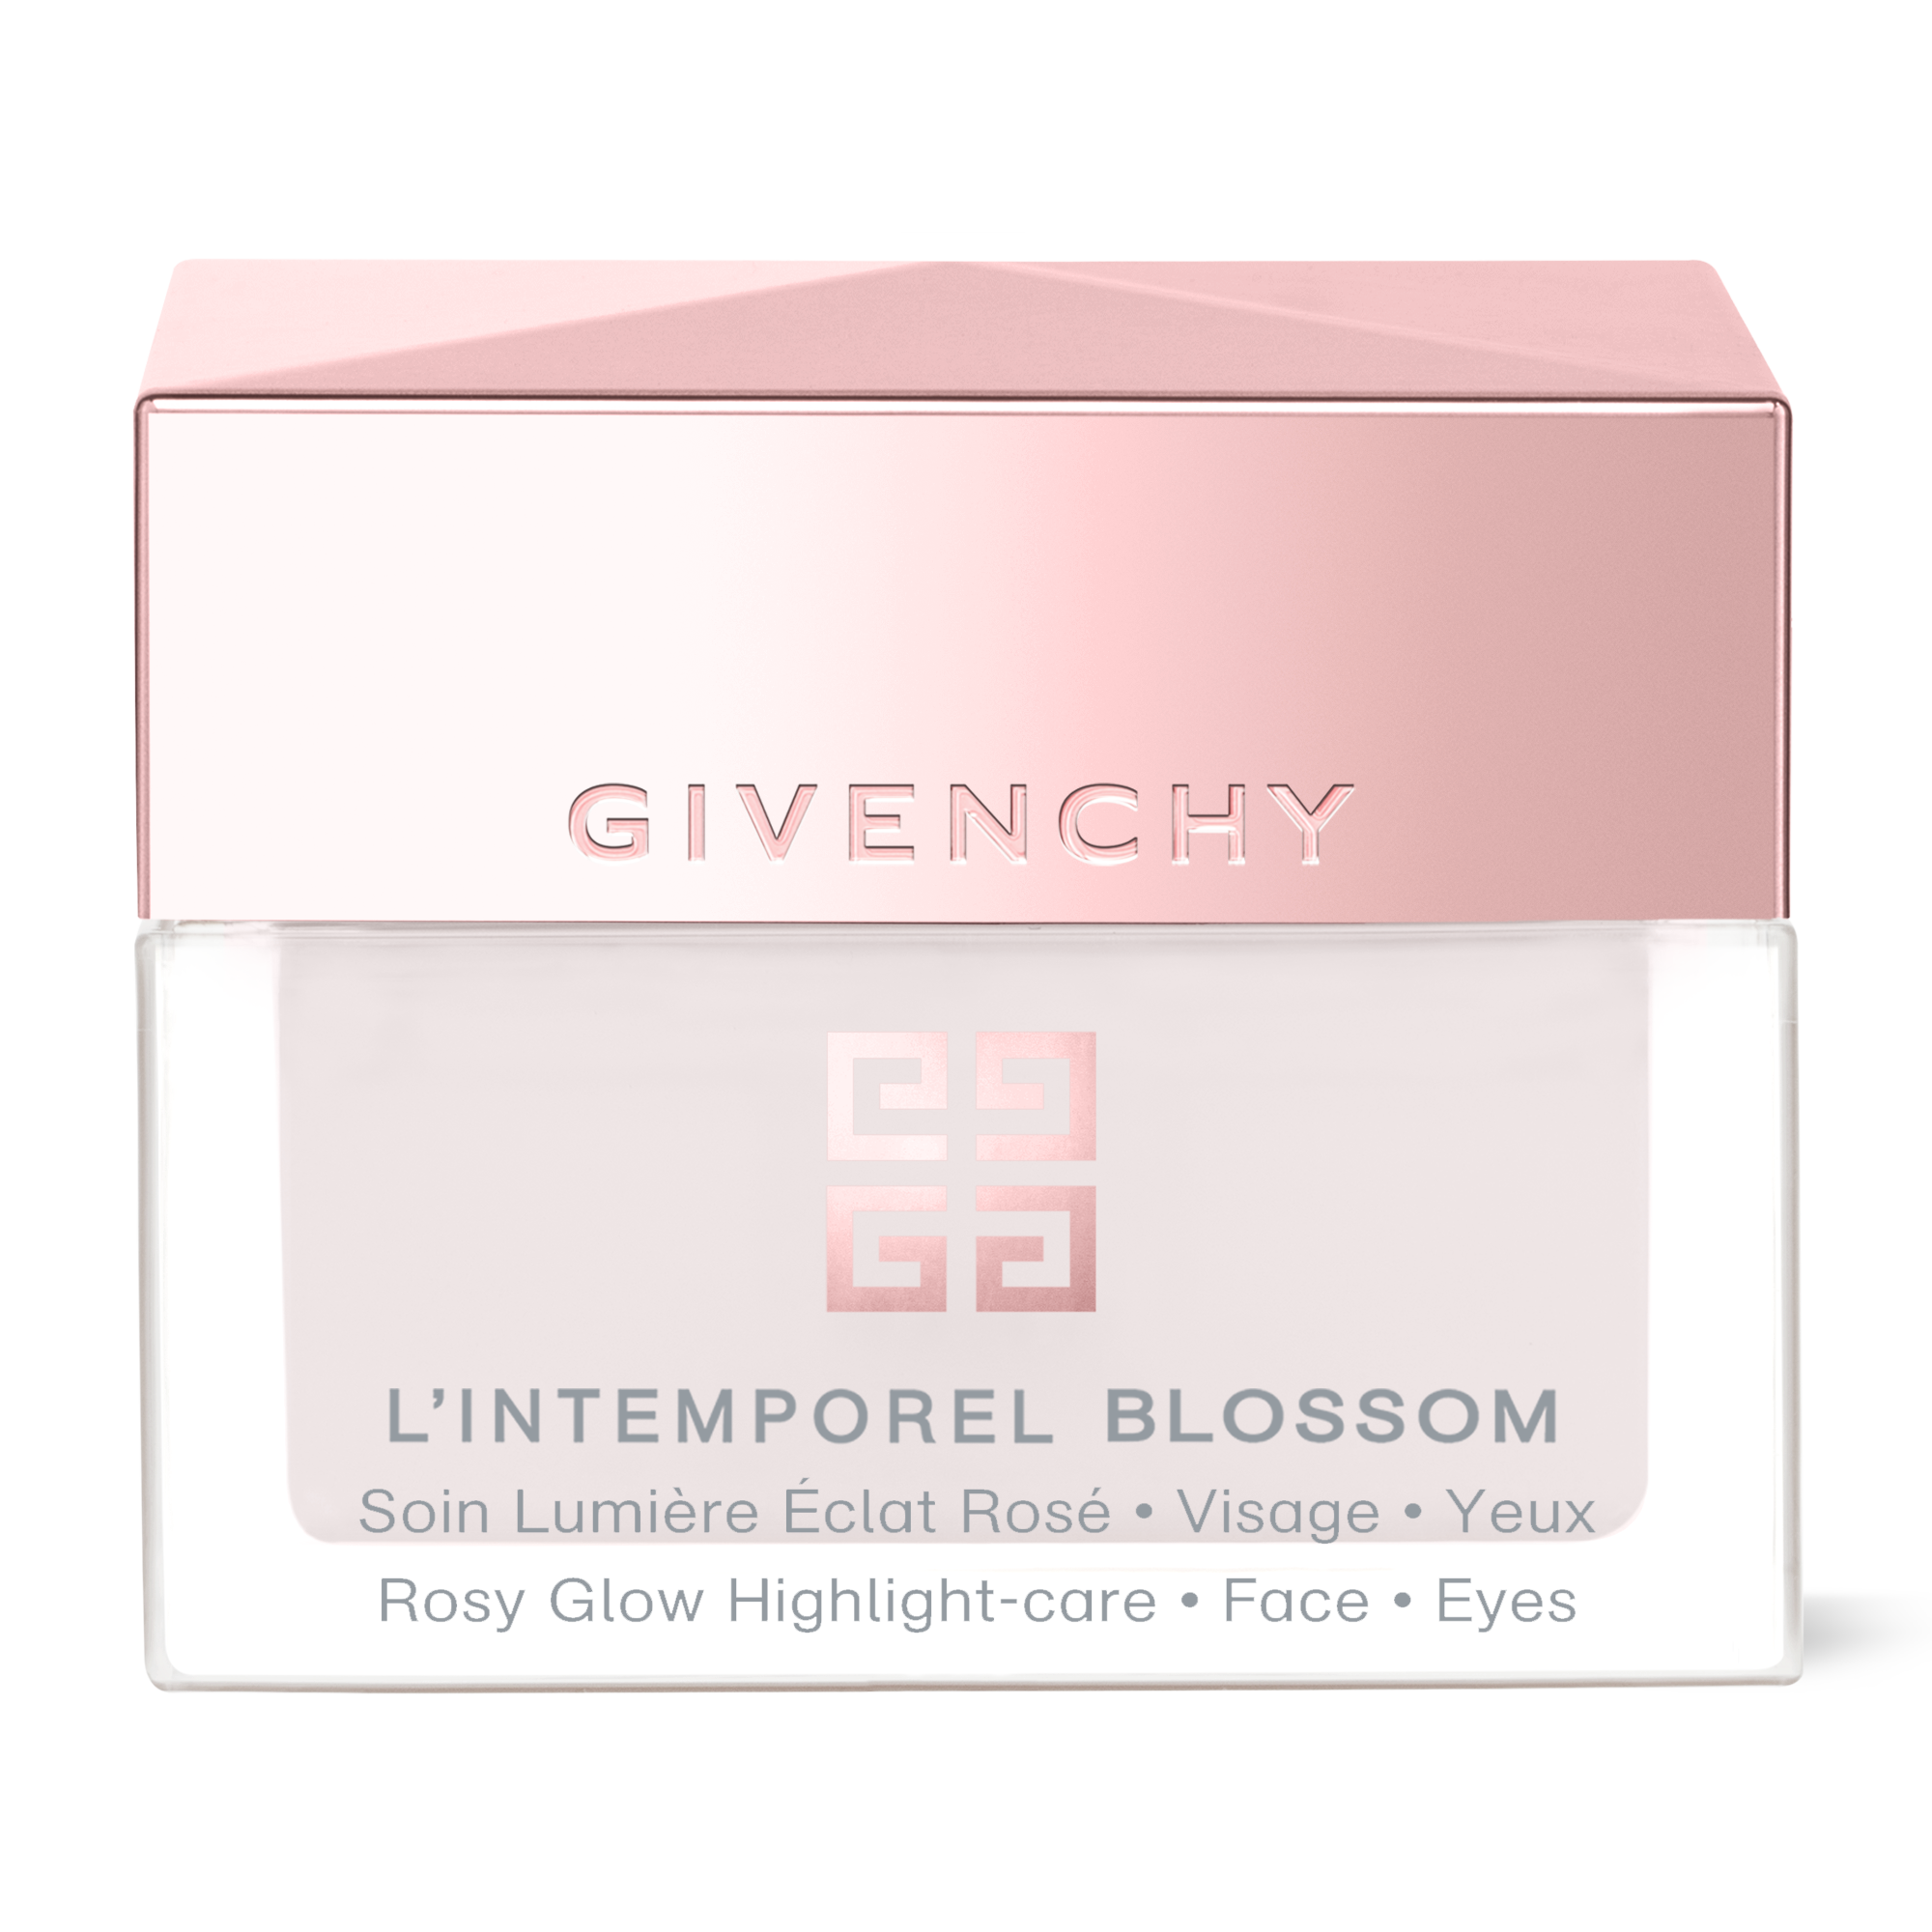 givenchy day cream